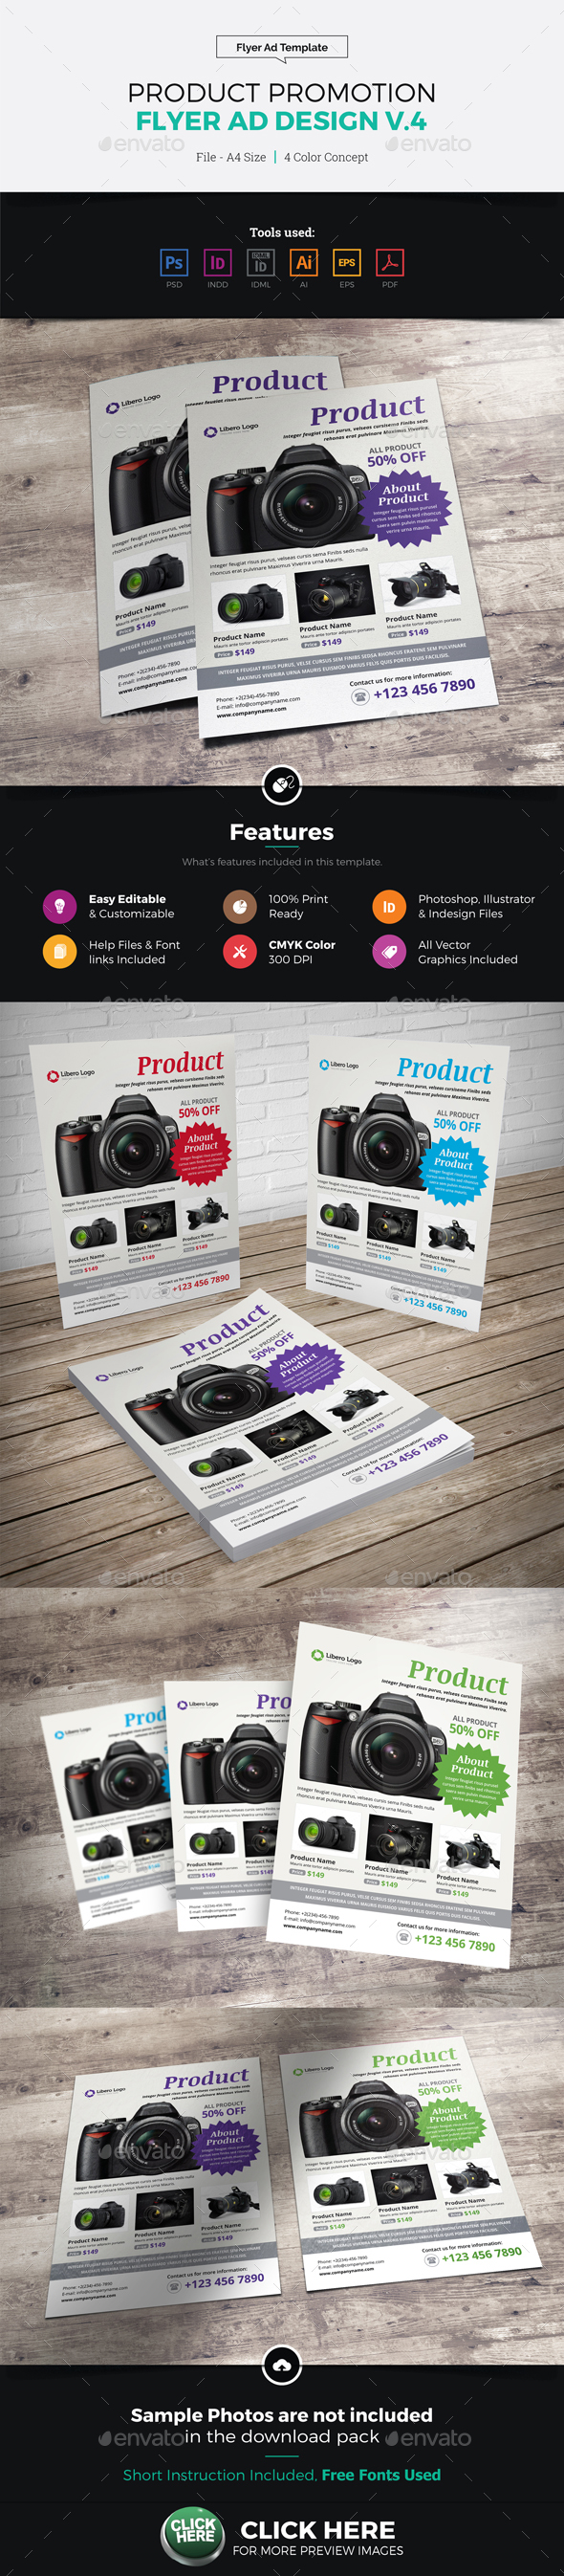 Product Sale Promotion Flyer Ad Design v4 - Corporate Flyers